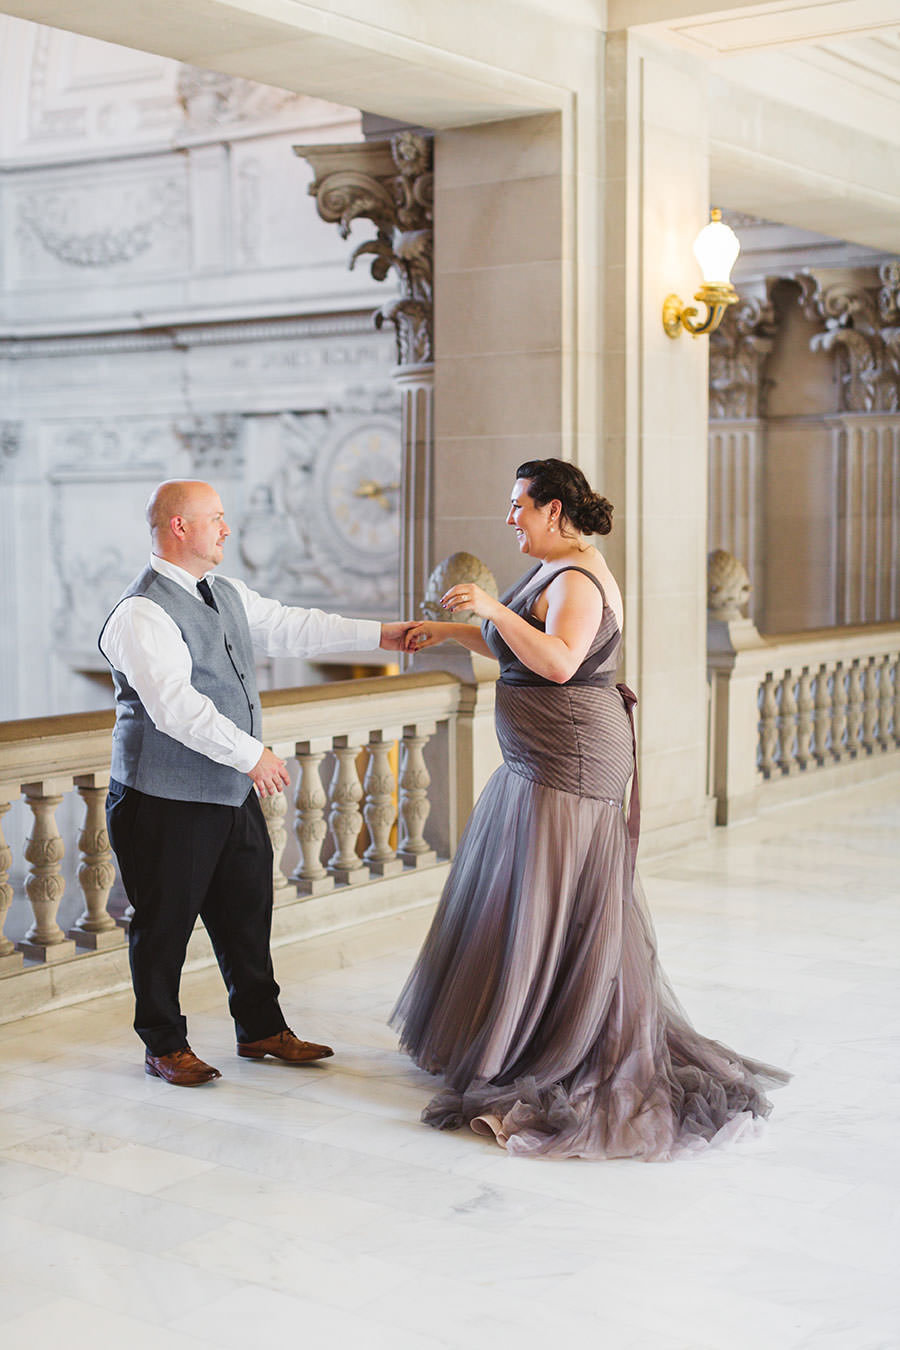 bride in gray dress being twirled by new husband after marrying at san francisco city hall